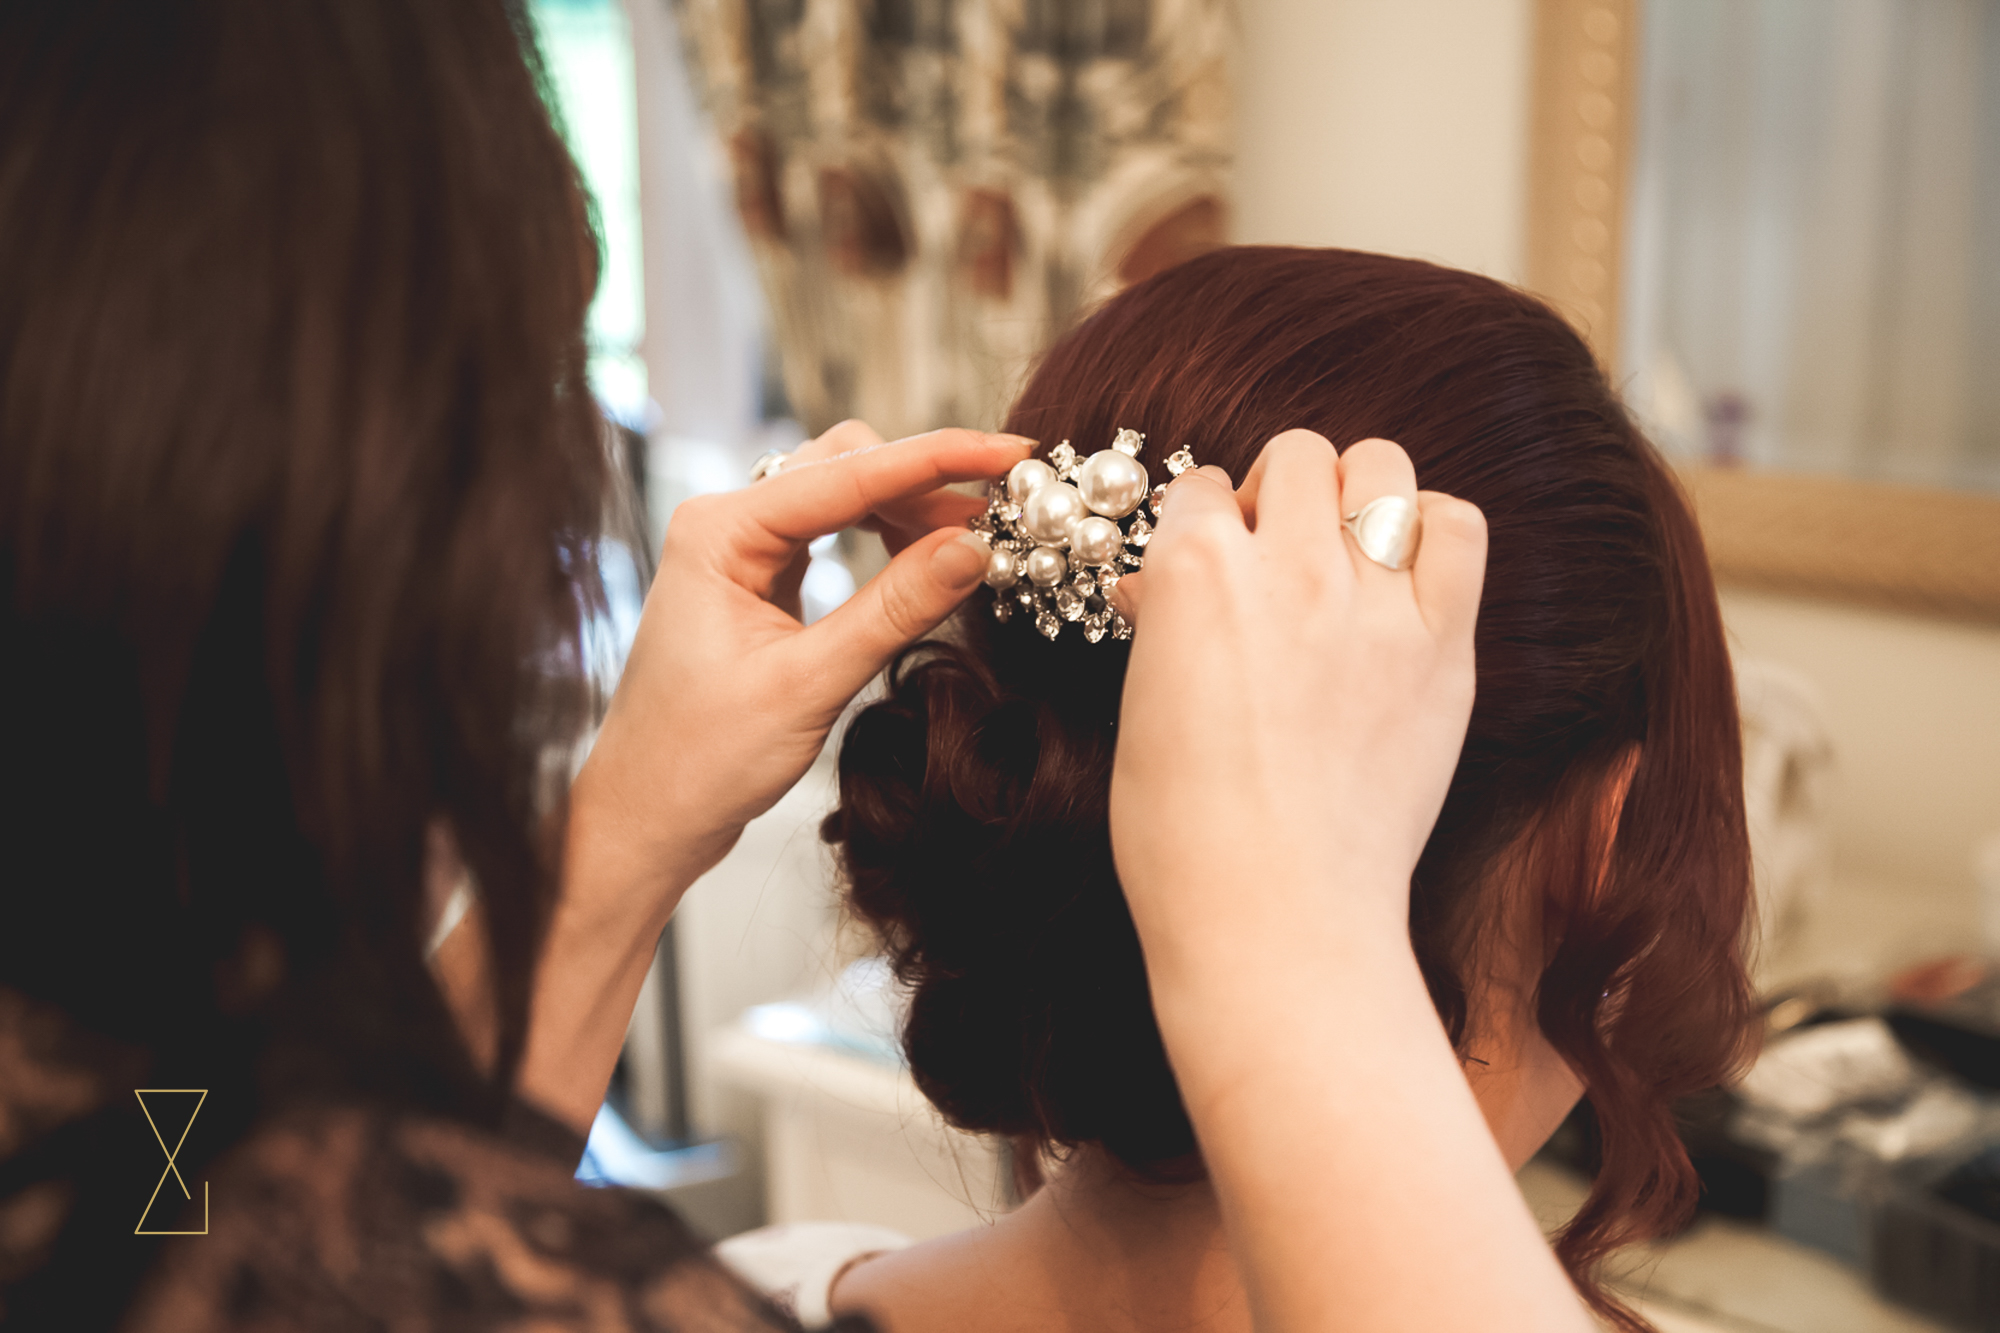 The bride having her hair decoration fitted at Colshaw Hall, Evans & Evans wedding photography